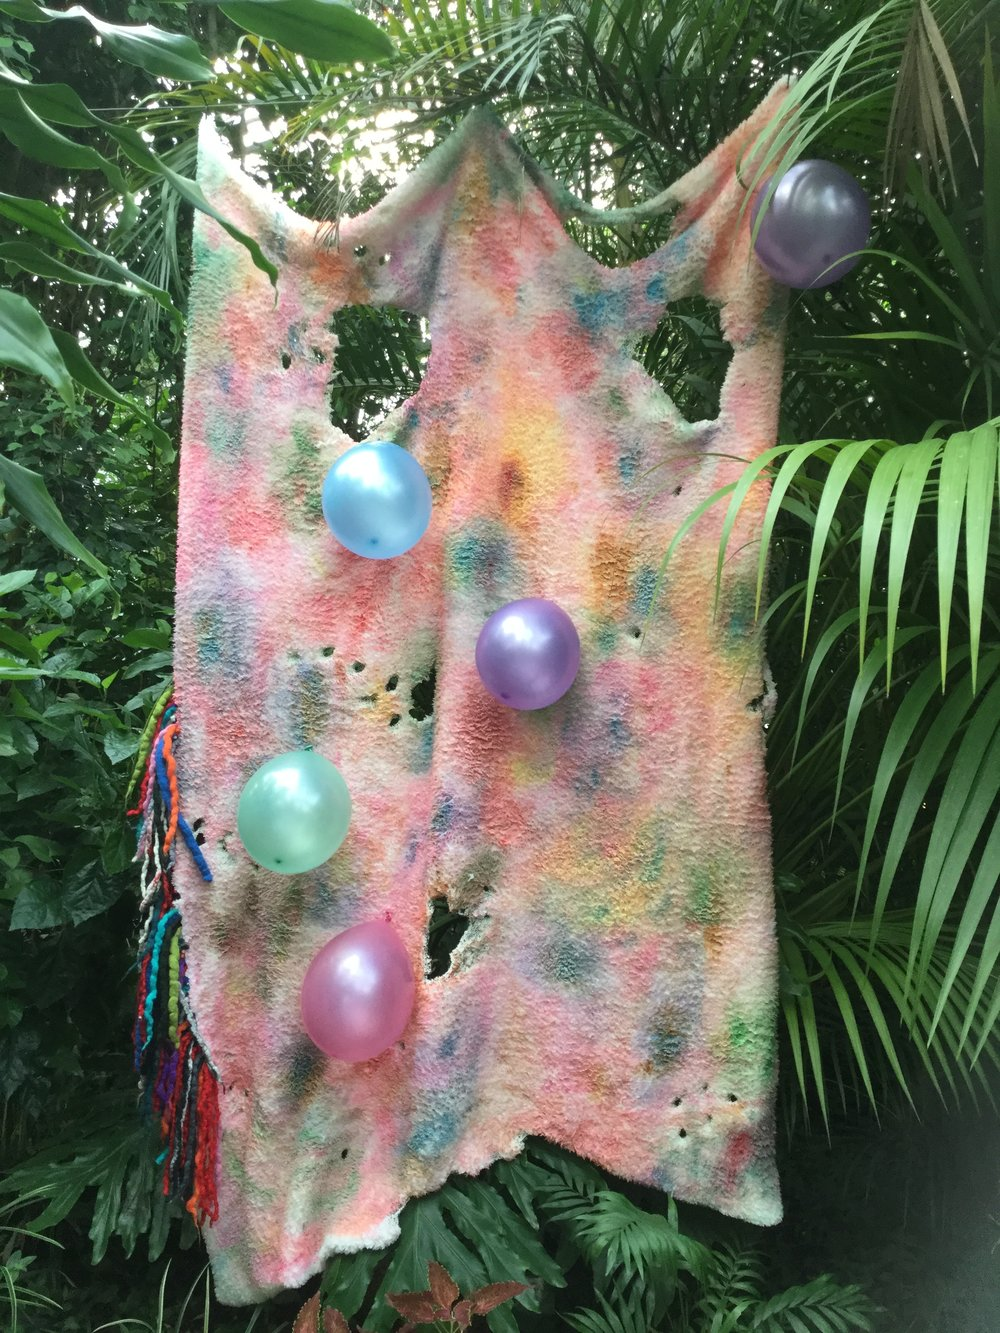 Untitled, acrylic, balloons and felt on fleece.  Installed at Roath Park Conservatory for Made in Roath festival 2017.